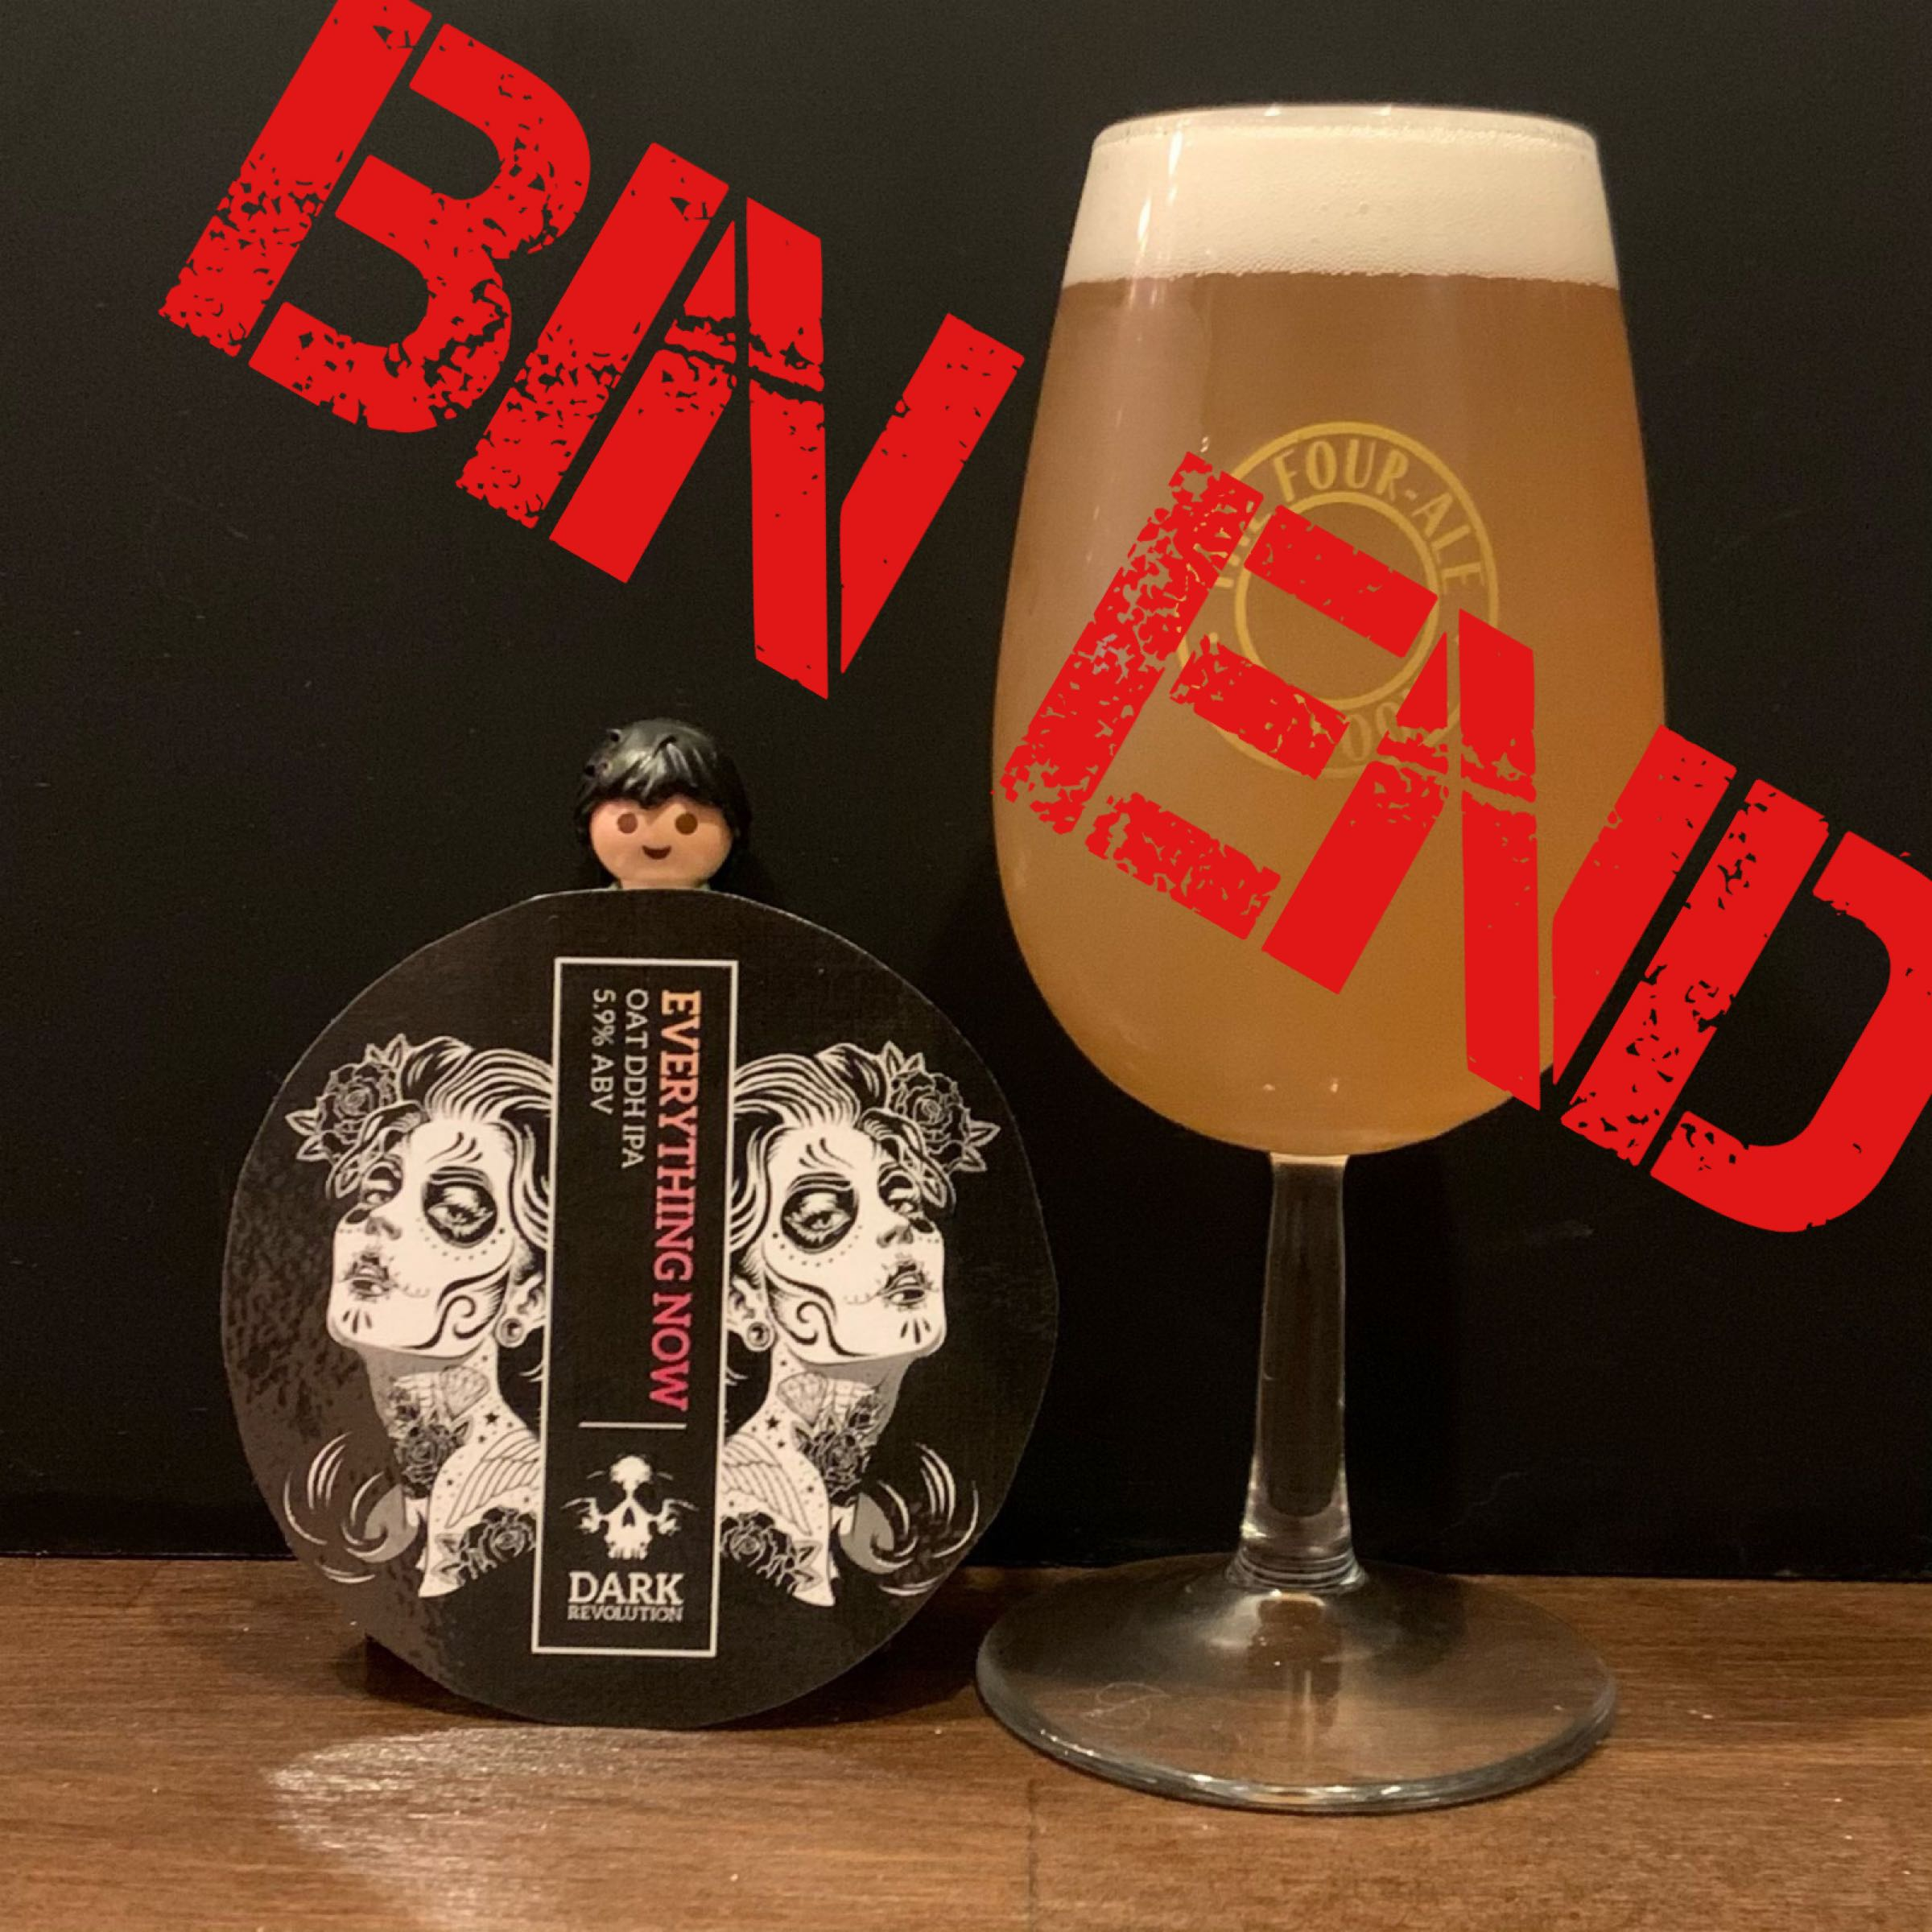 Bin End Keg - Craft Keg - Dark Revolution-  Everything Now - Oat DDH Pale - 5.9% (1 Crowler)